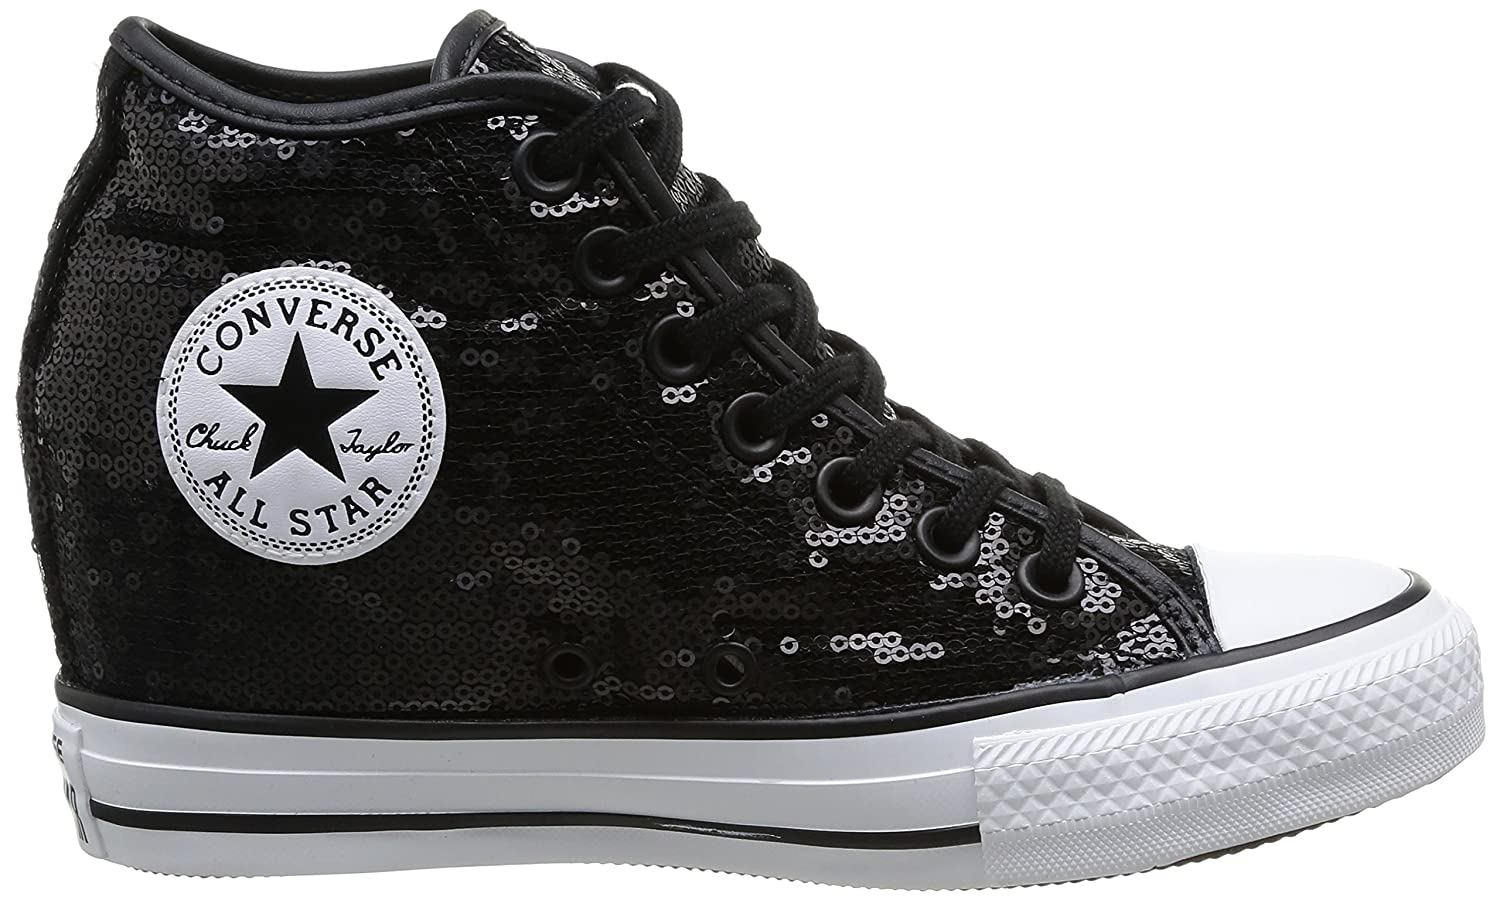 0851c54daa73 Converse Women s All All Star Mid Lux Sequins Desert Boots  Amazon.co.uk   Shoes   Bags